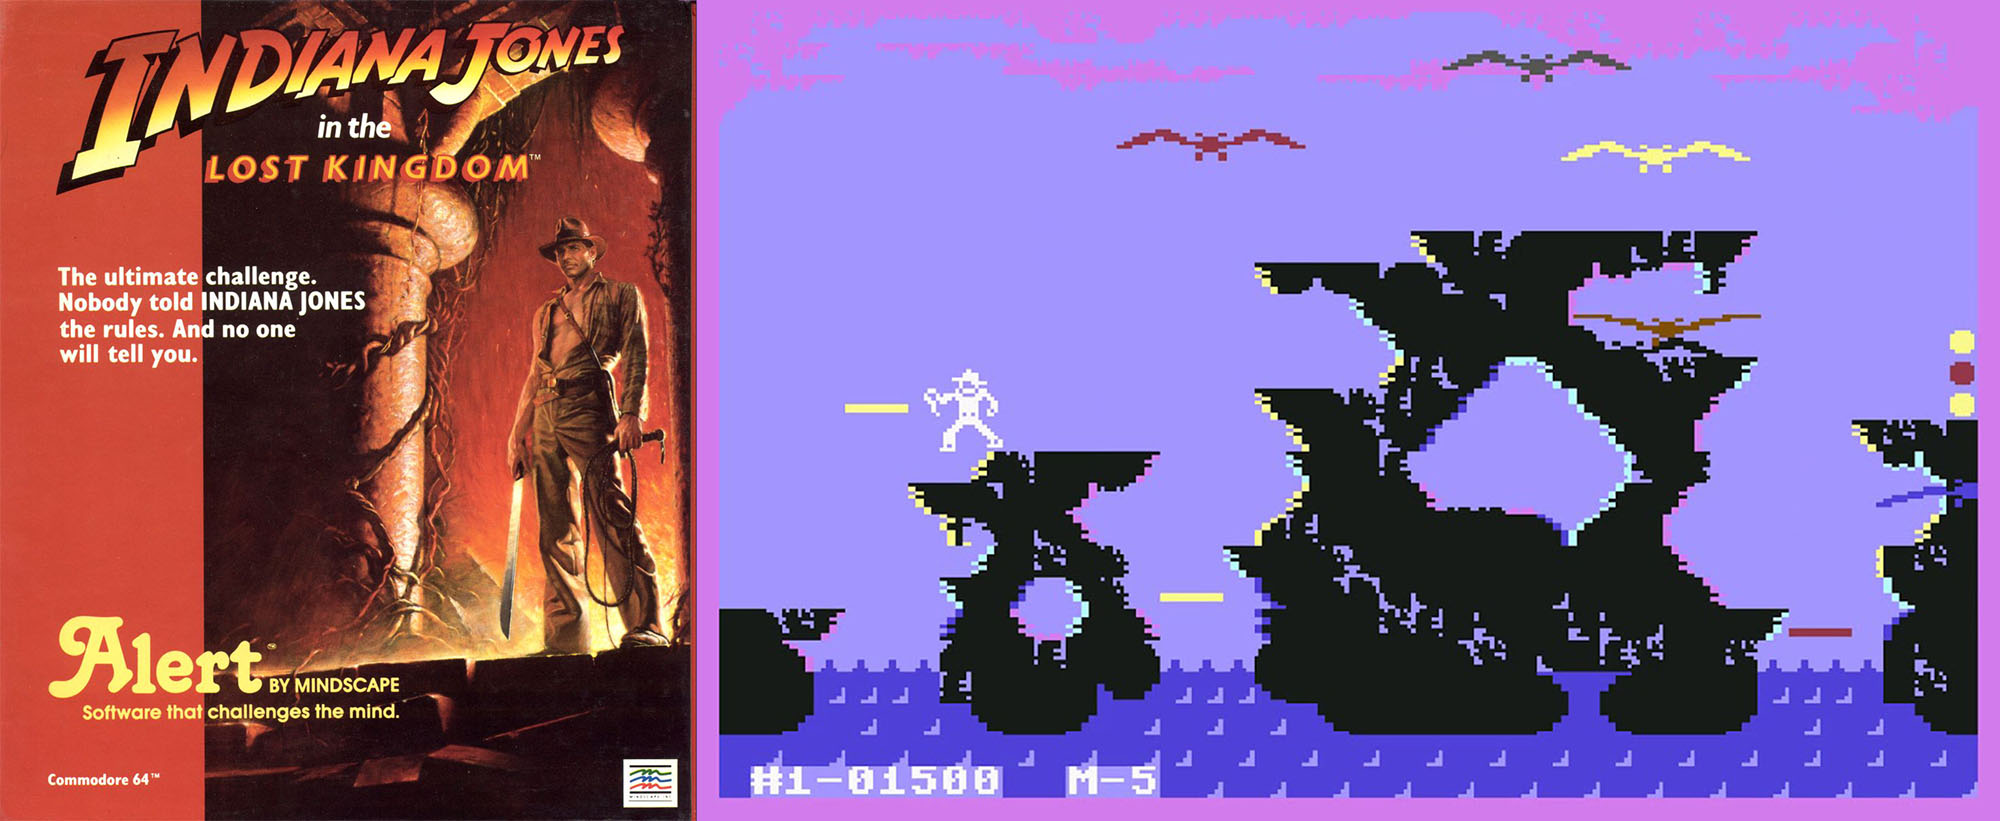 Indiana Jones in the Lost Kingdom Commodore 64